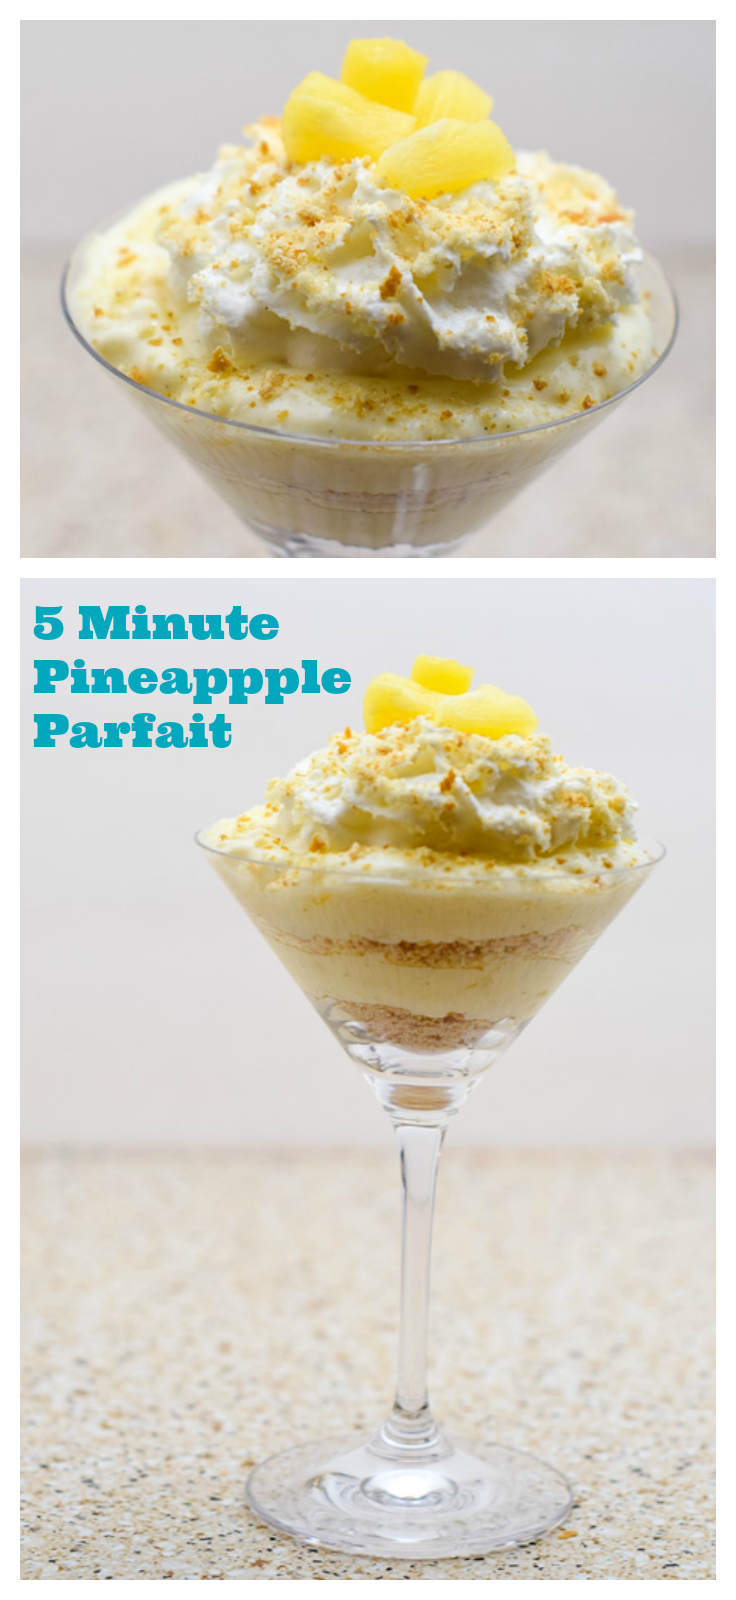 Quick and easy dessert 5 minute pineapple parfait plus for Quick dessert recipes with pictures